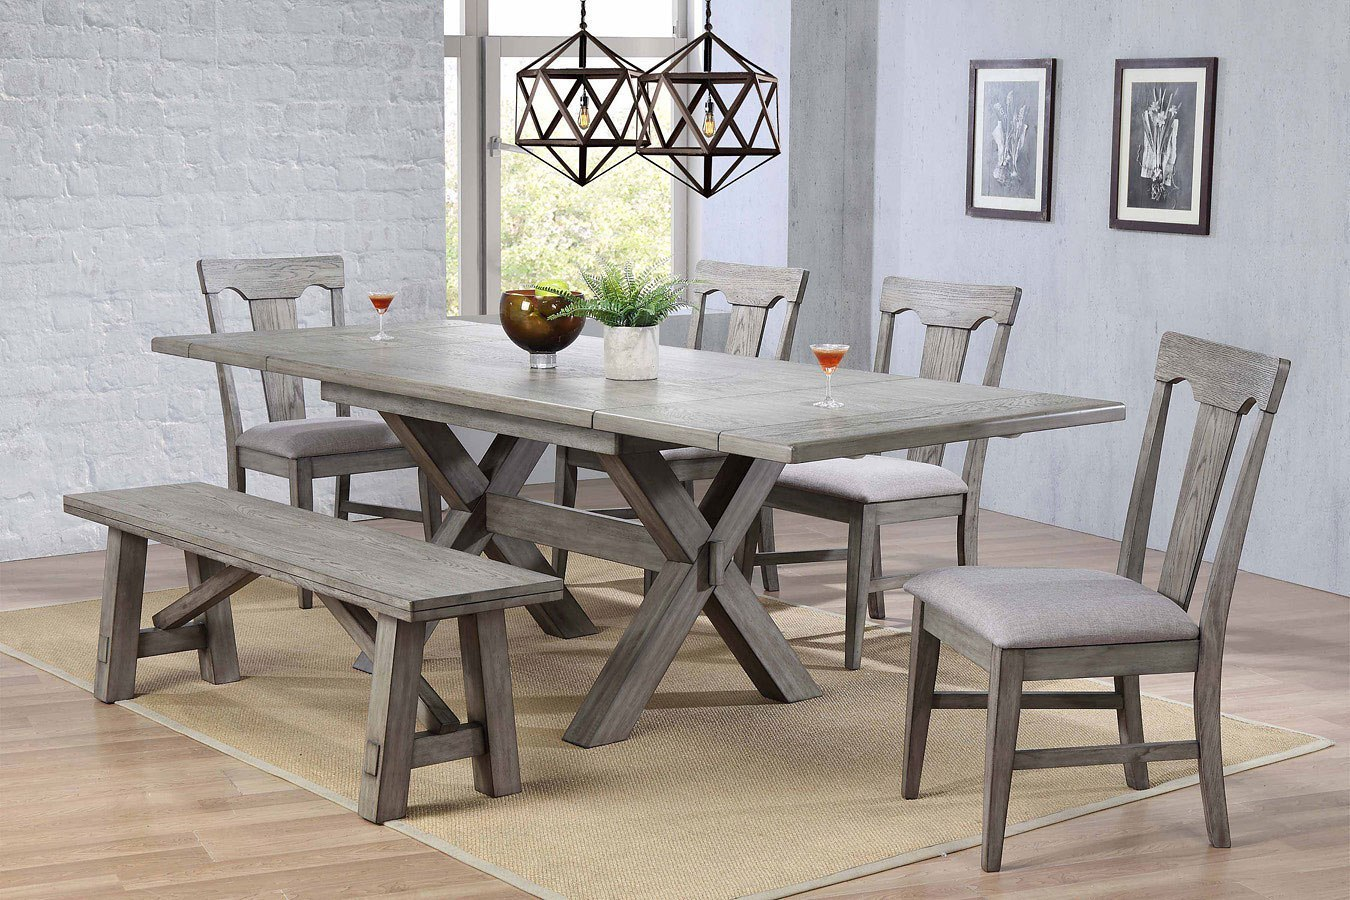 Graystone Trestle Dining Room Set W/ Upholstered Seat Chairs